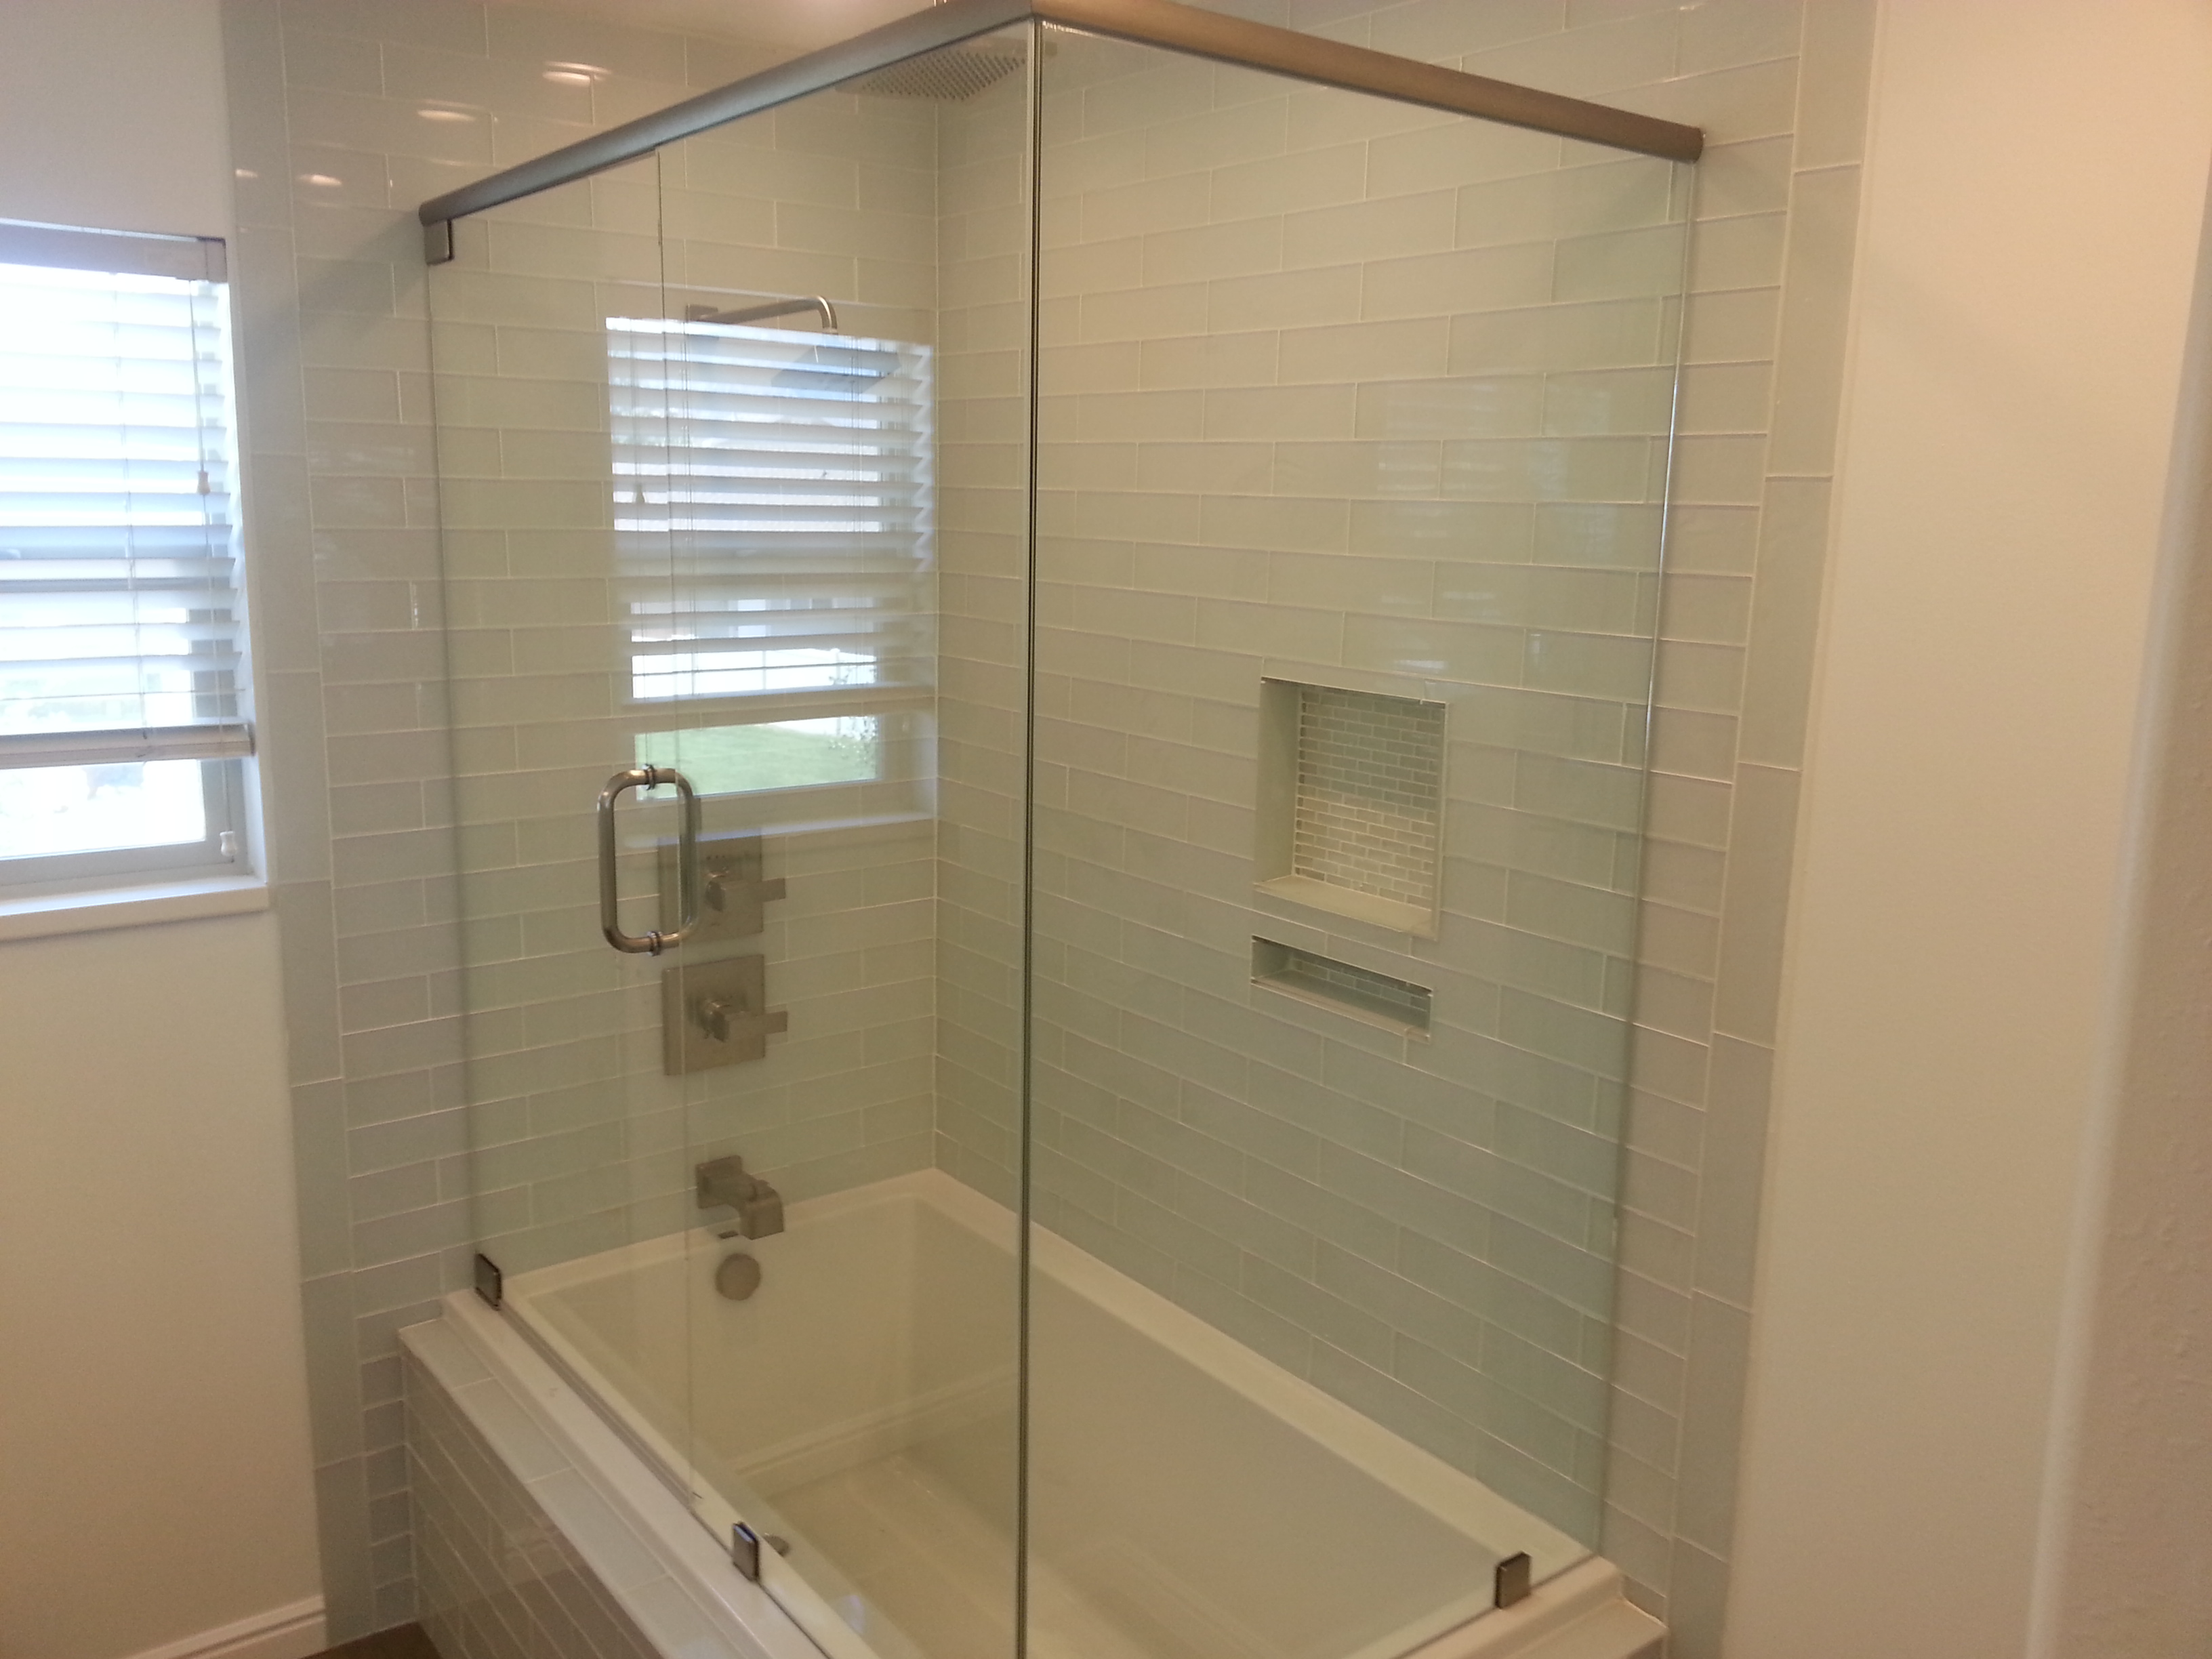 Bathroom remodel by fix it handyman utah handyman for Bathroom remodel utah